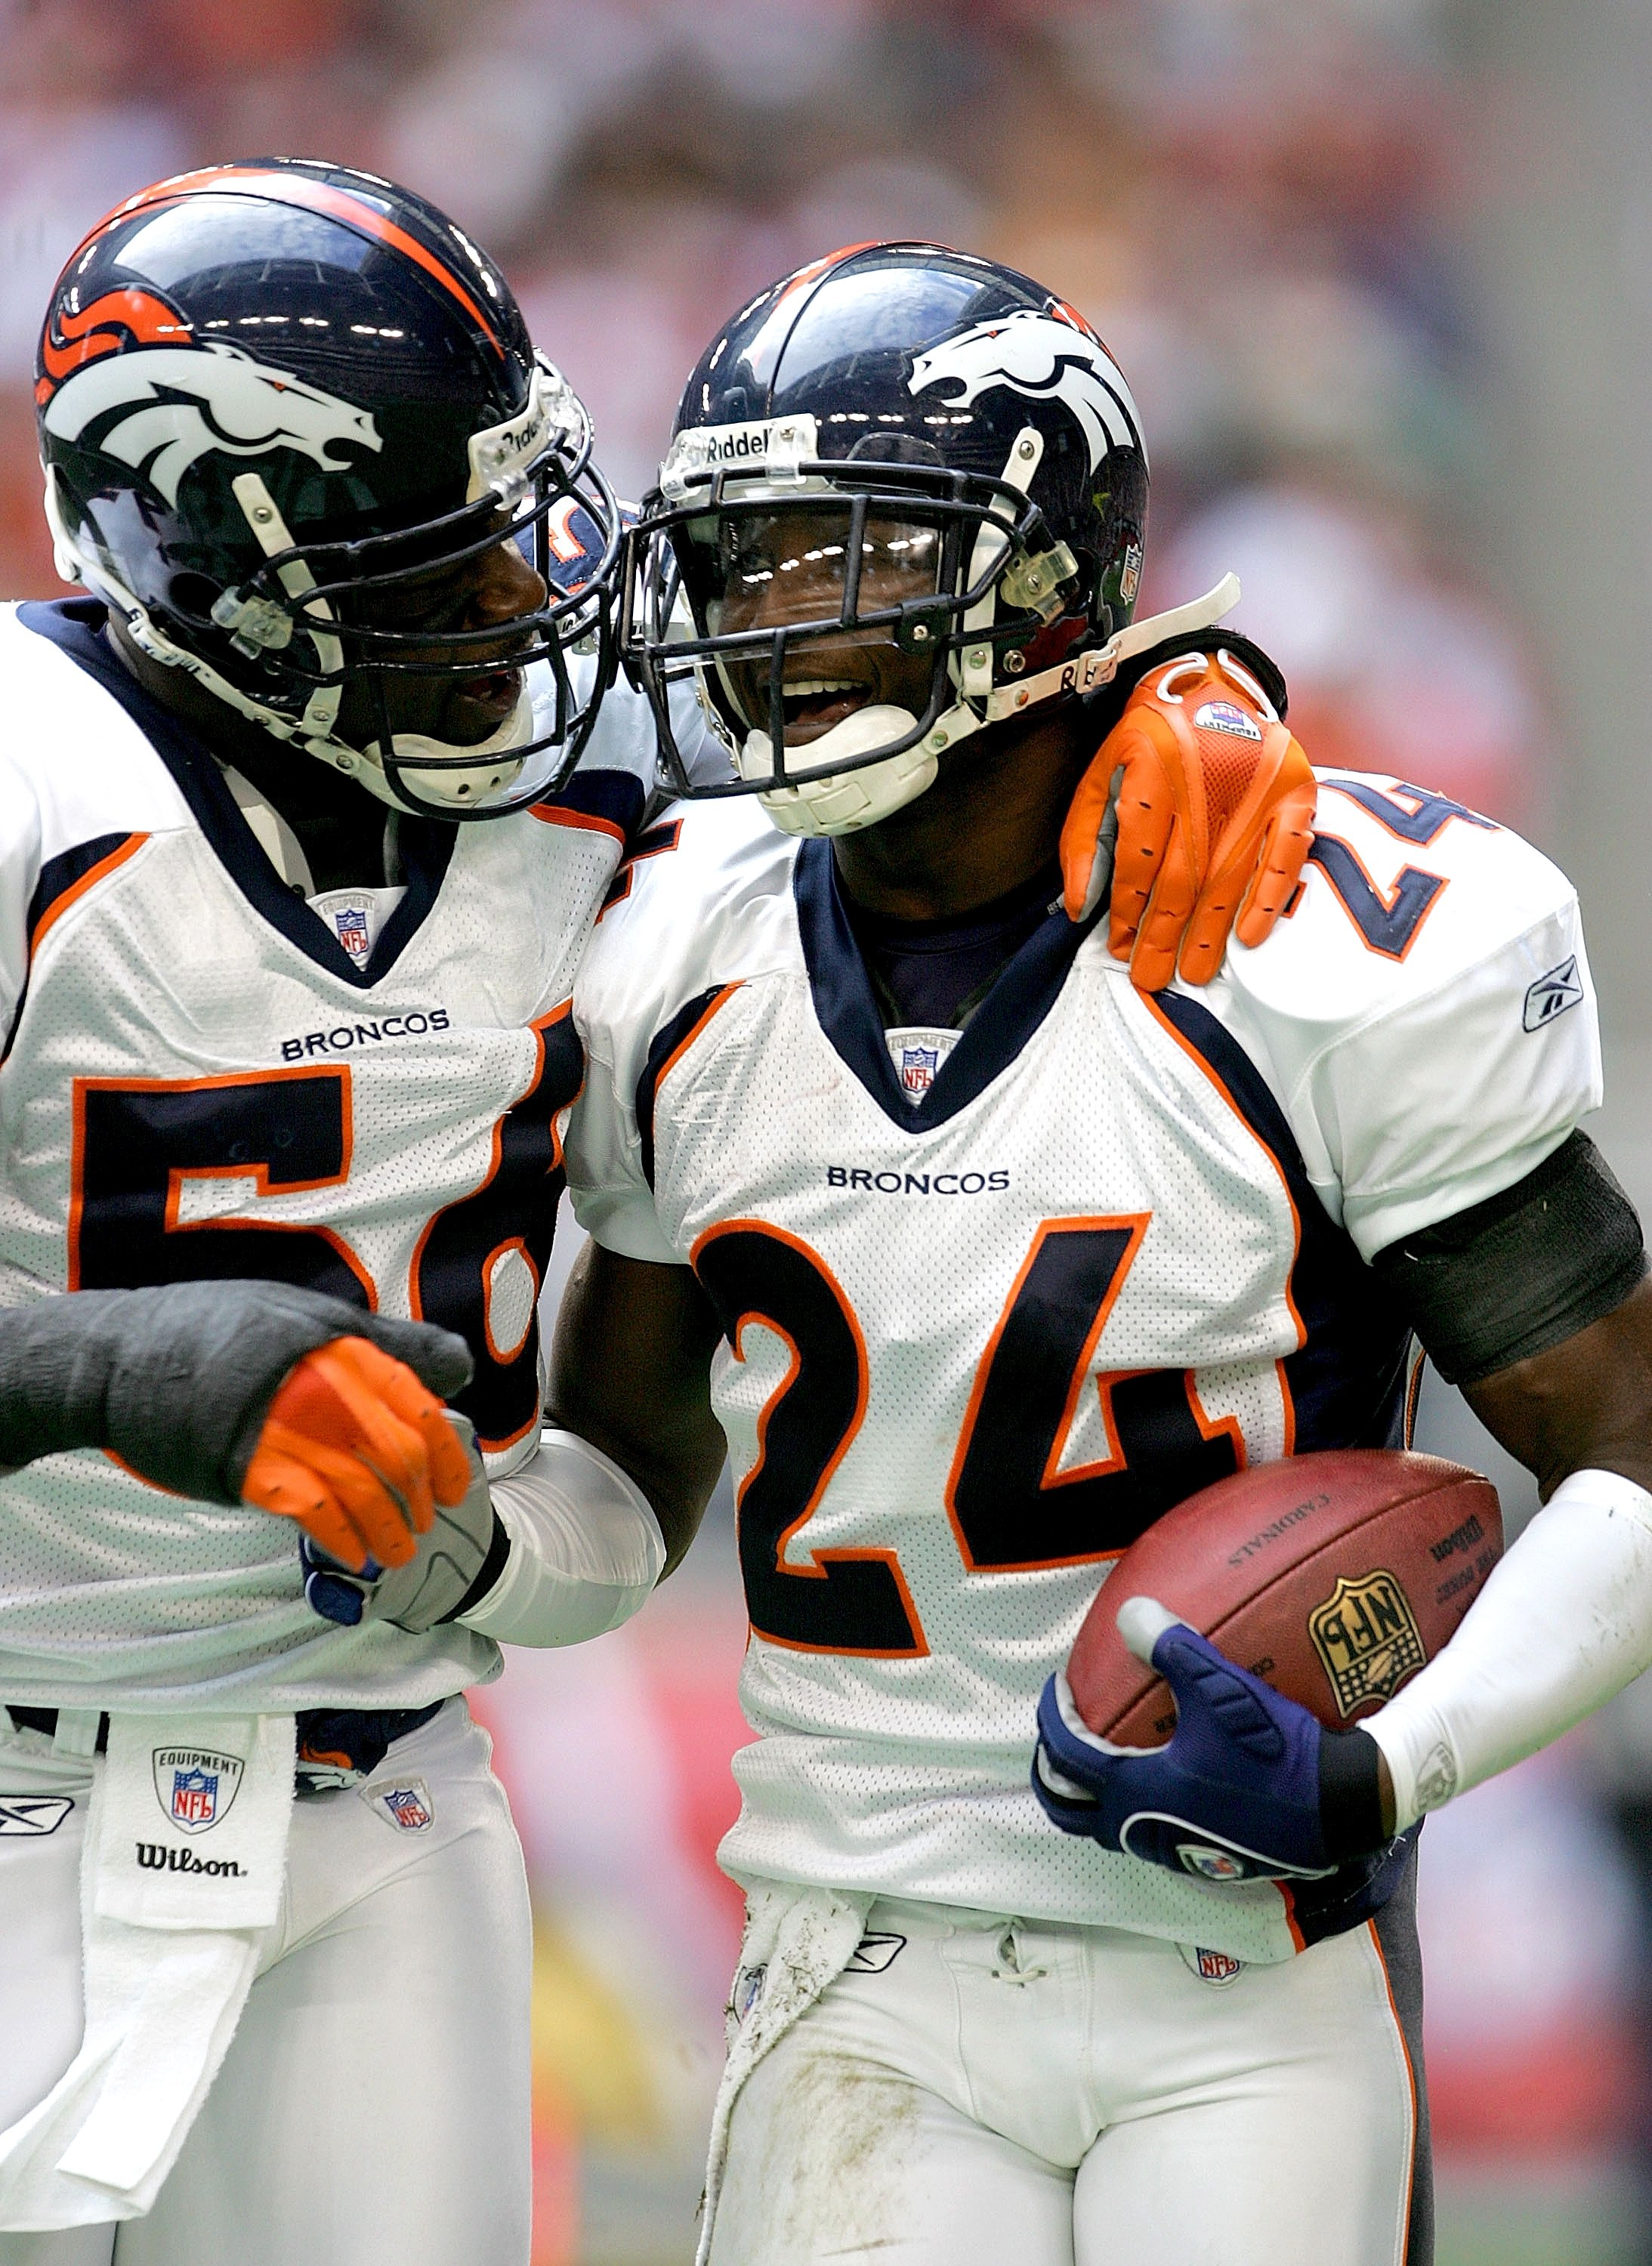 GLENDALE, AZ - DECEMBER 17: Cornerback Champ Bailey #24 and linebacker Al Wilson #56 of the Denver Broncos celebrate after Bailey's first quarter pass interception against the Arizona Cardinals on December 17, 2006 at University of Phoenix Stadium in Glen